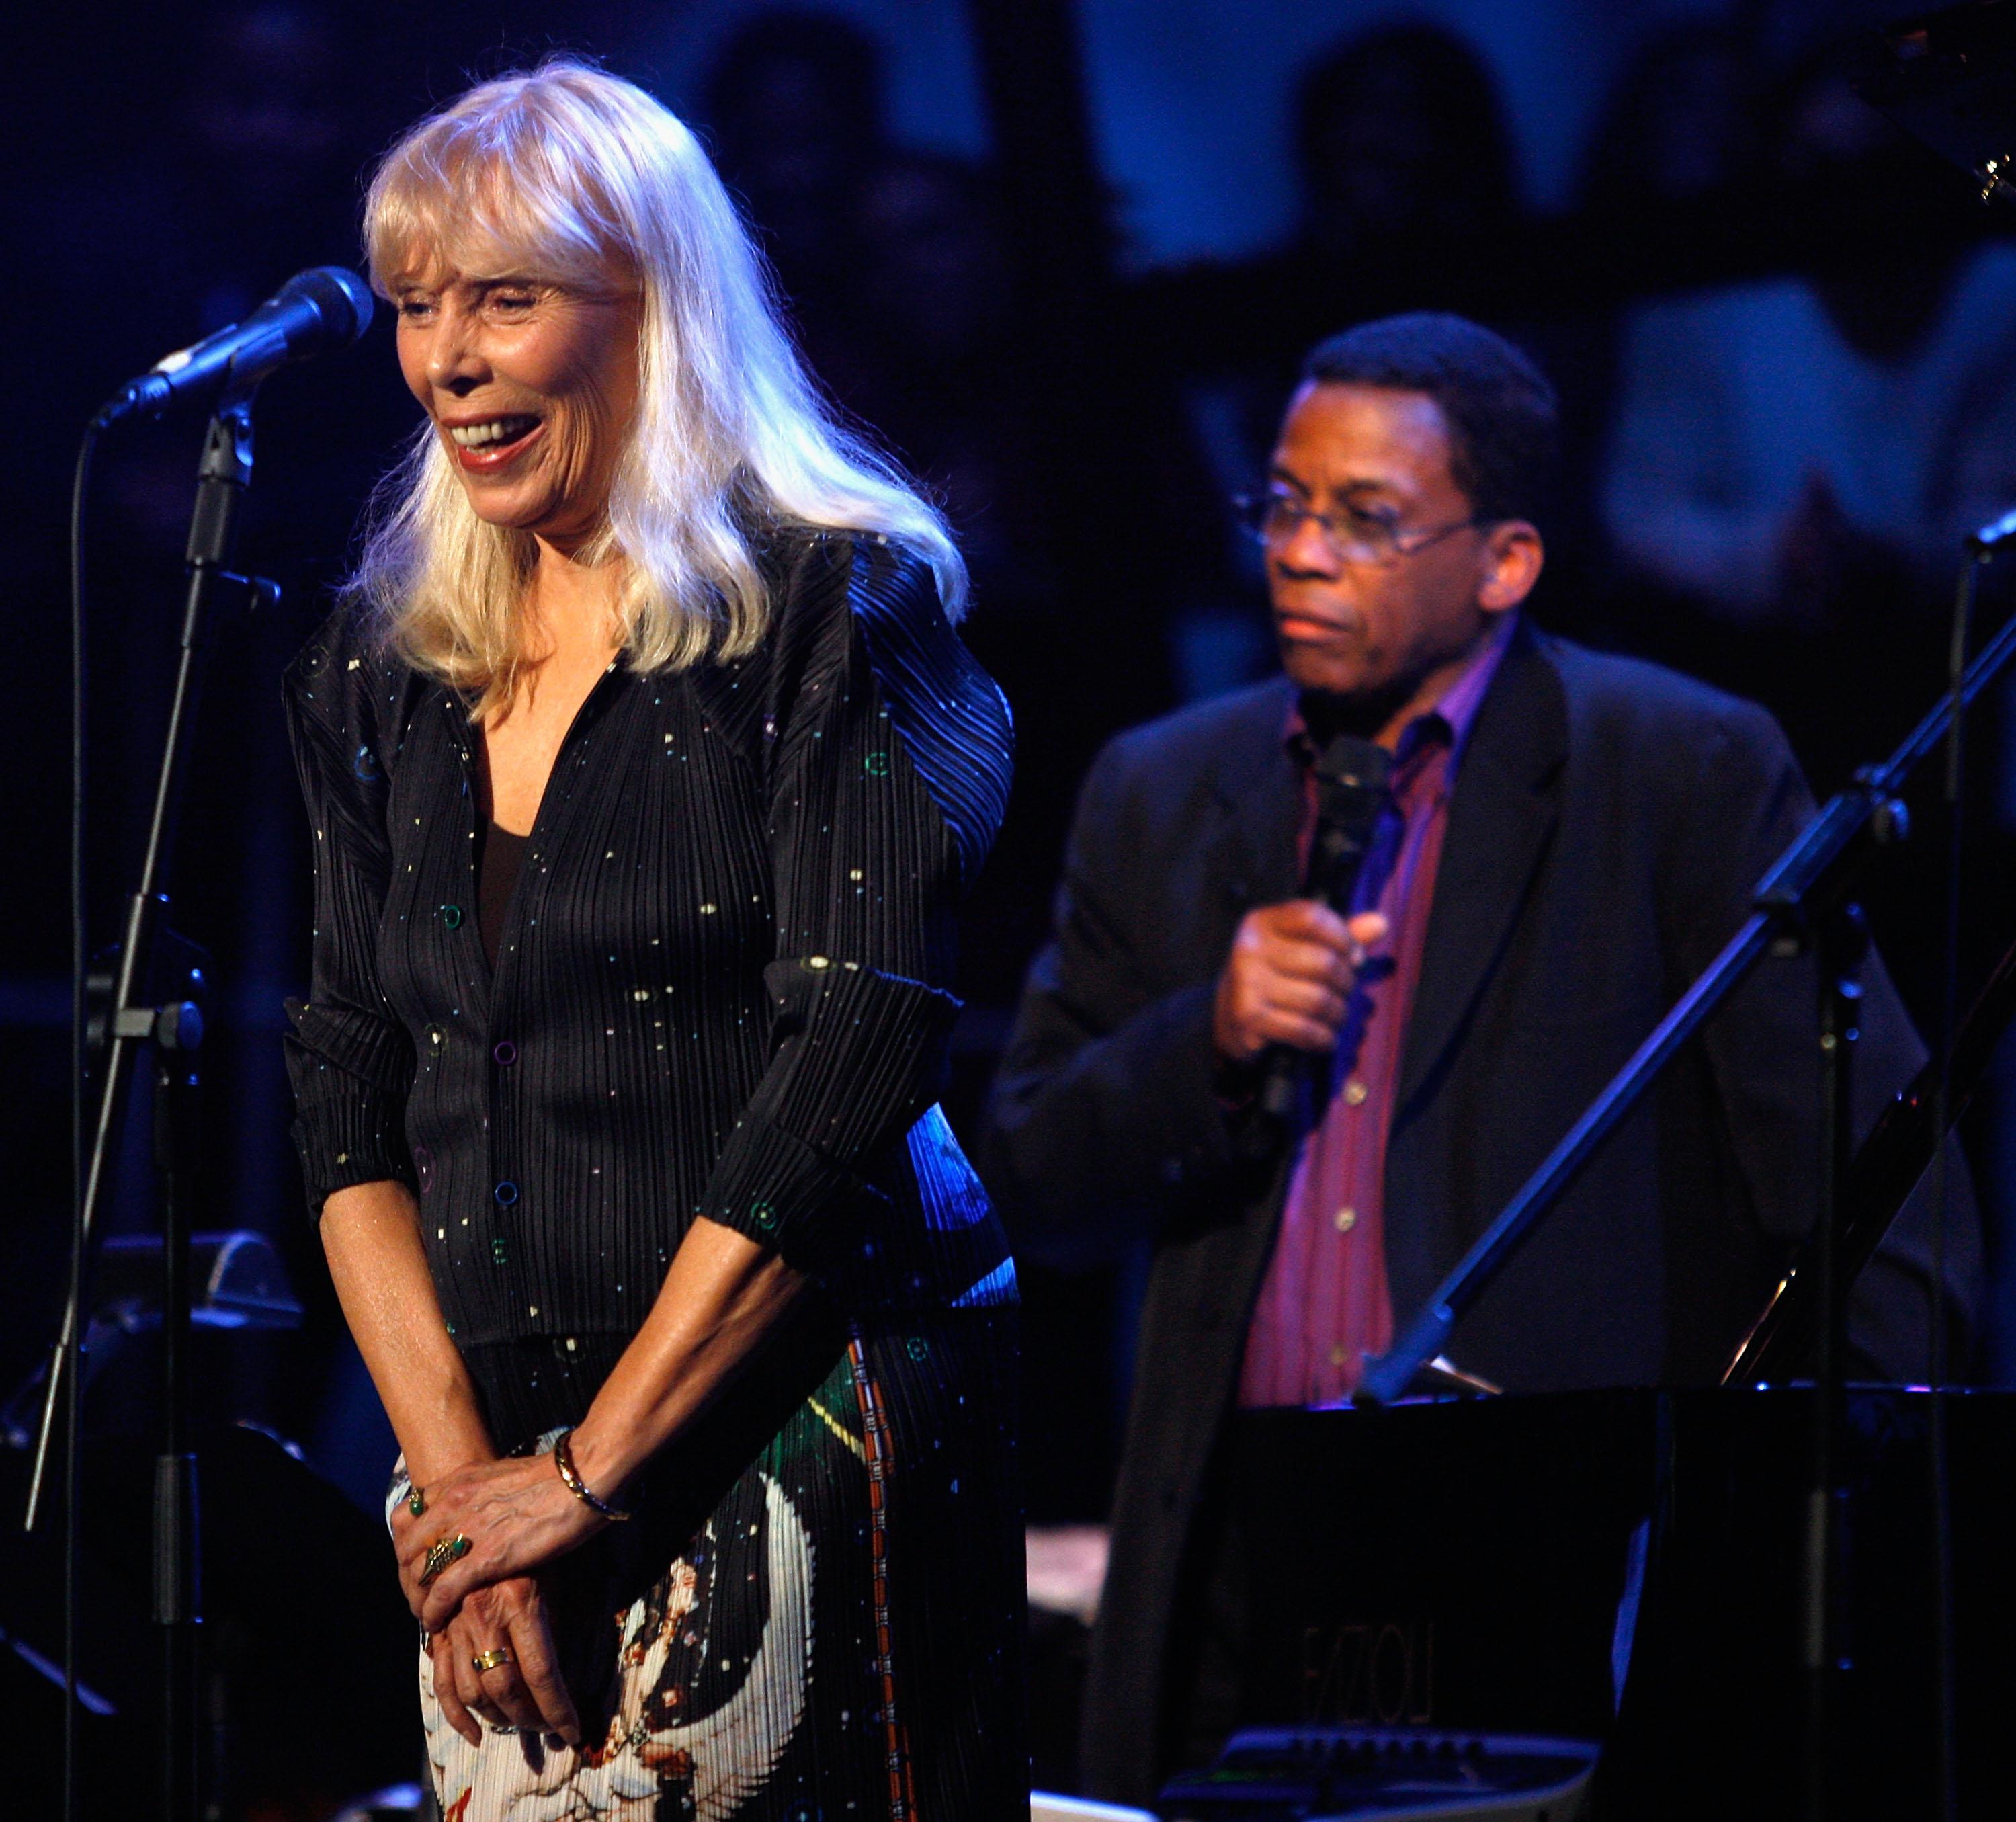 Lawyer says Joni Mitchell may be released from hospital soon